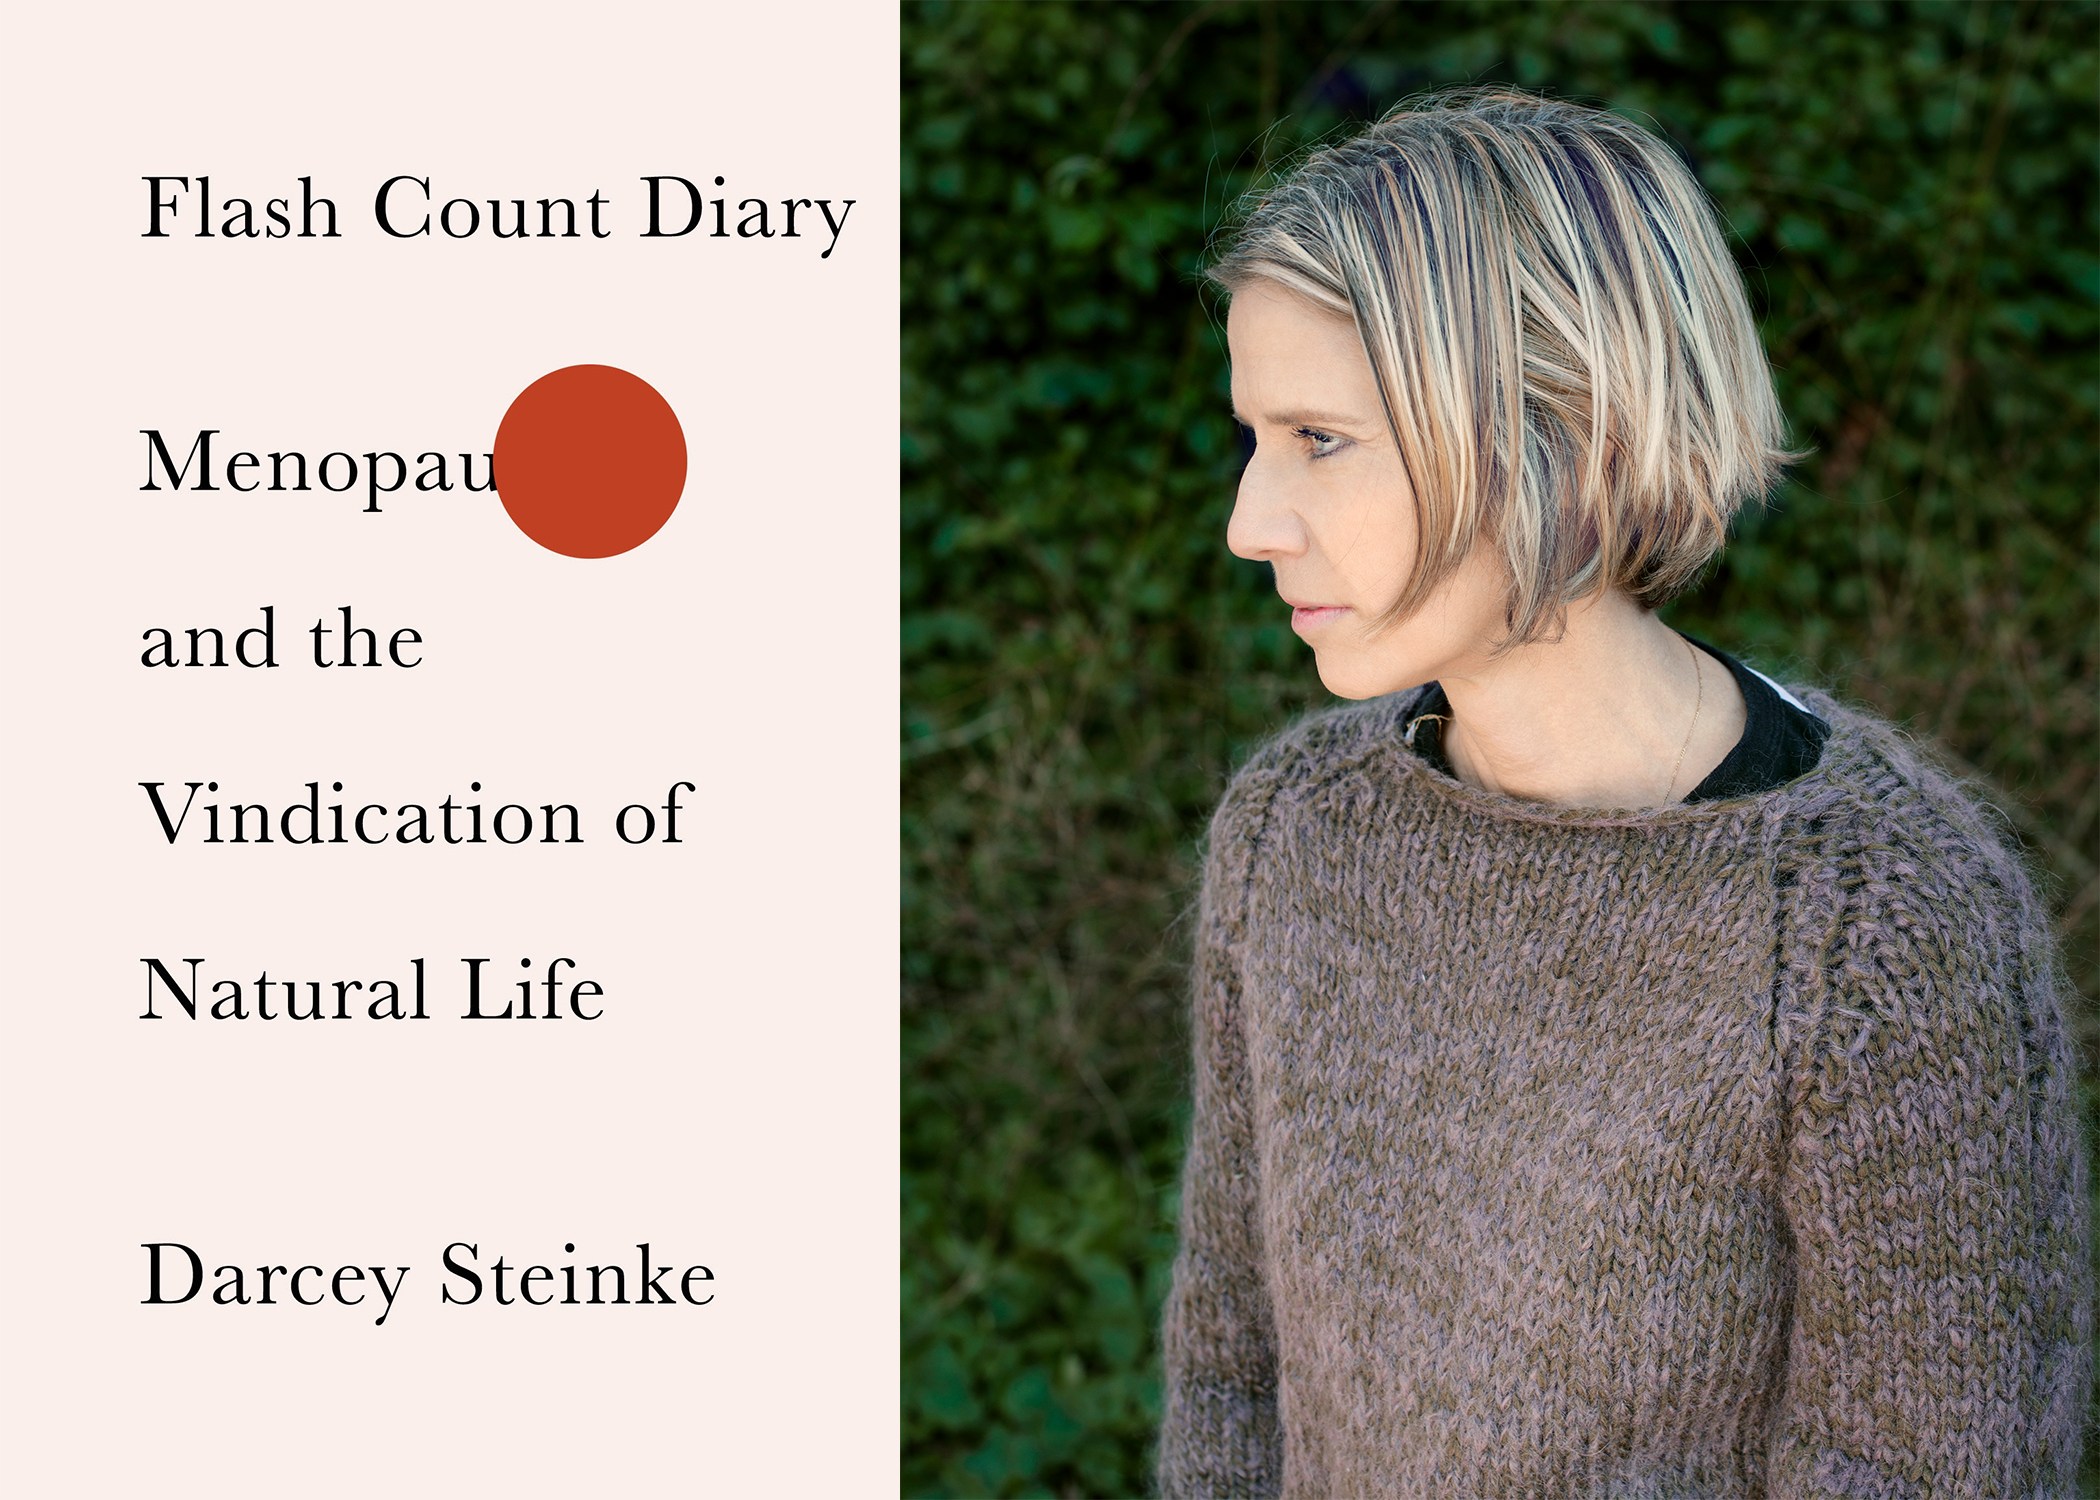 Darcey Steinke, author of Flash Count Diary